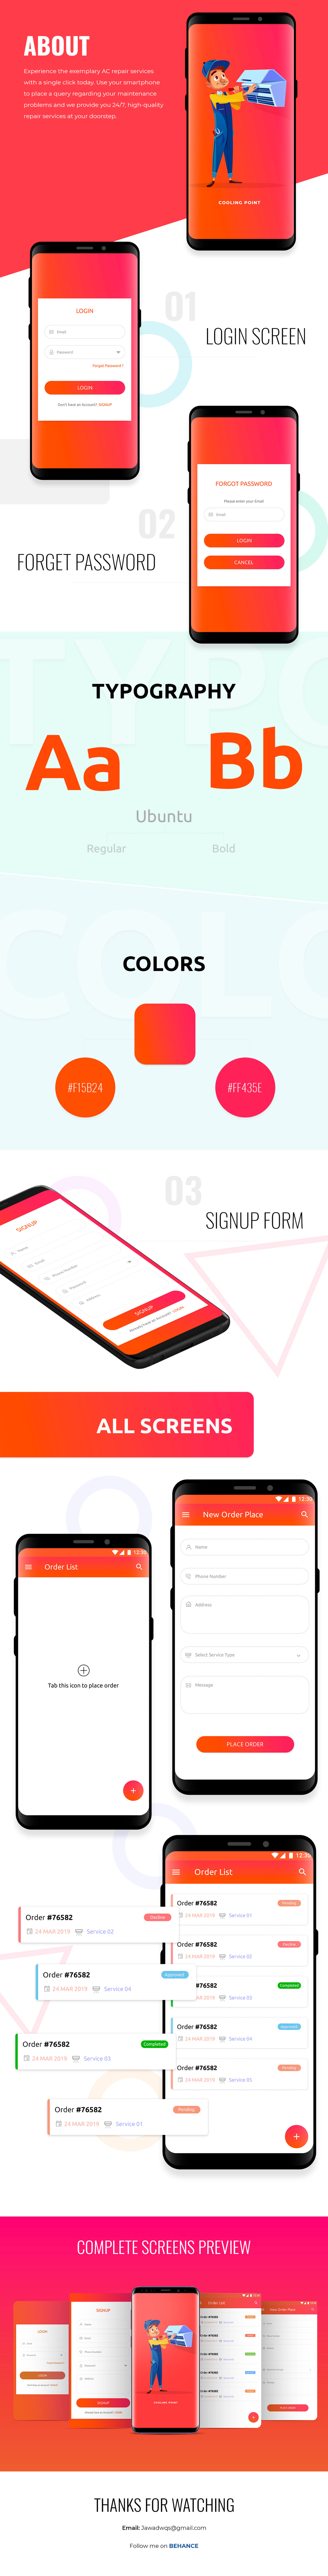 UI ux Android App interaction design maintenance user experience mobile repairing